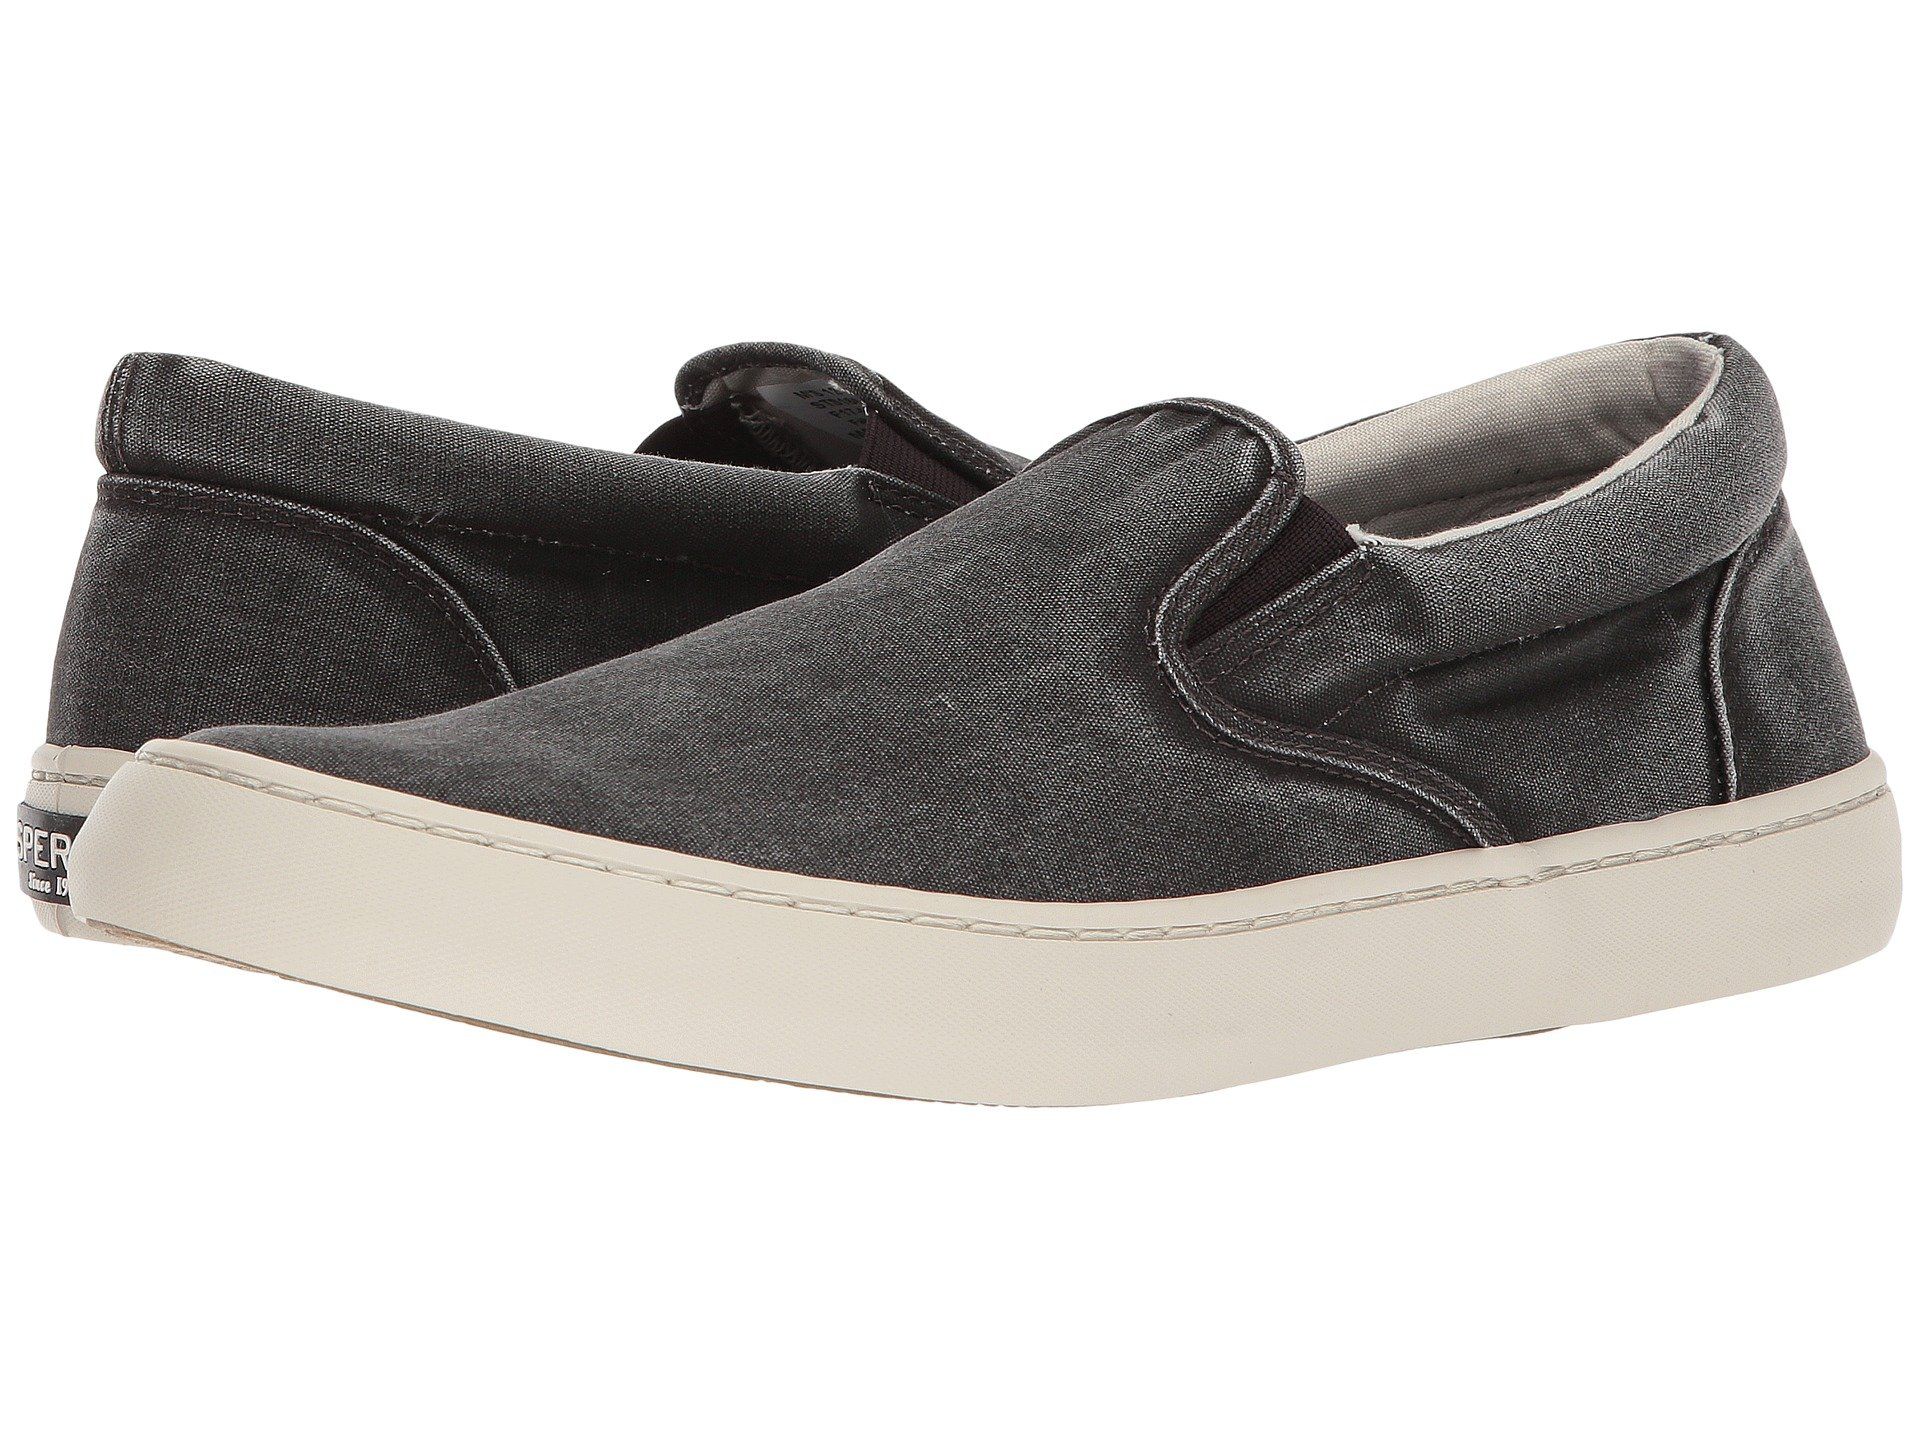 Sperry Cutter Slip-On GJG9SZHY